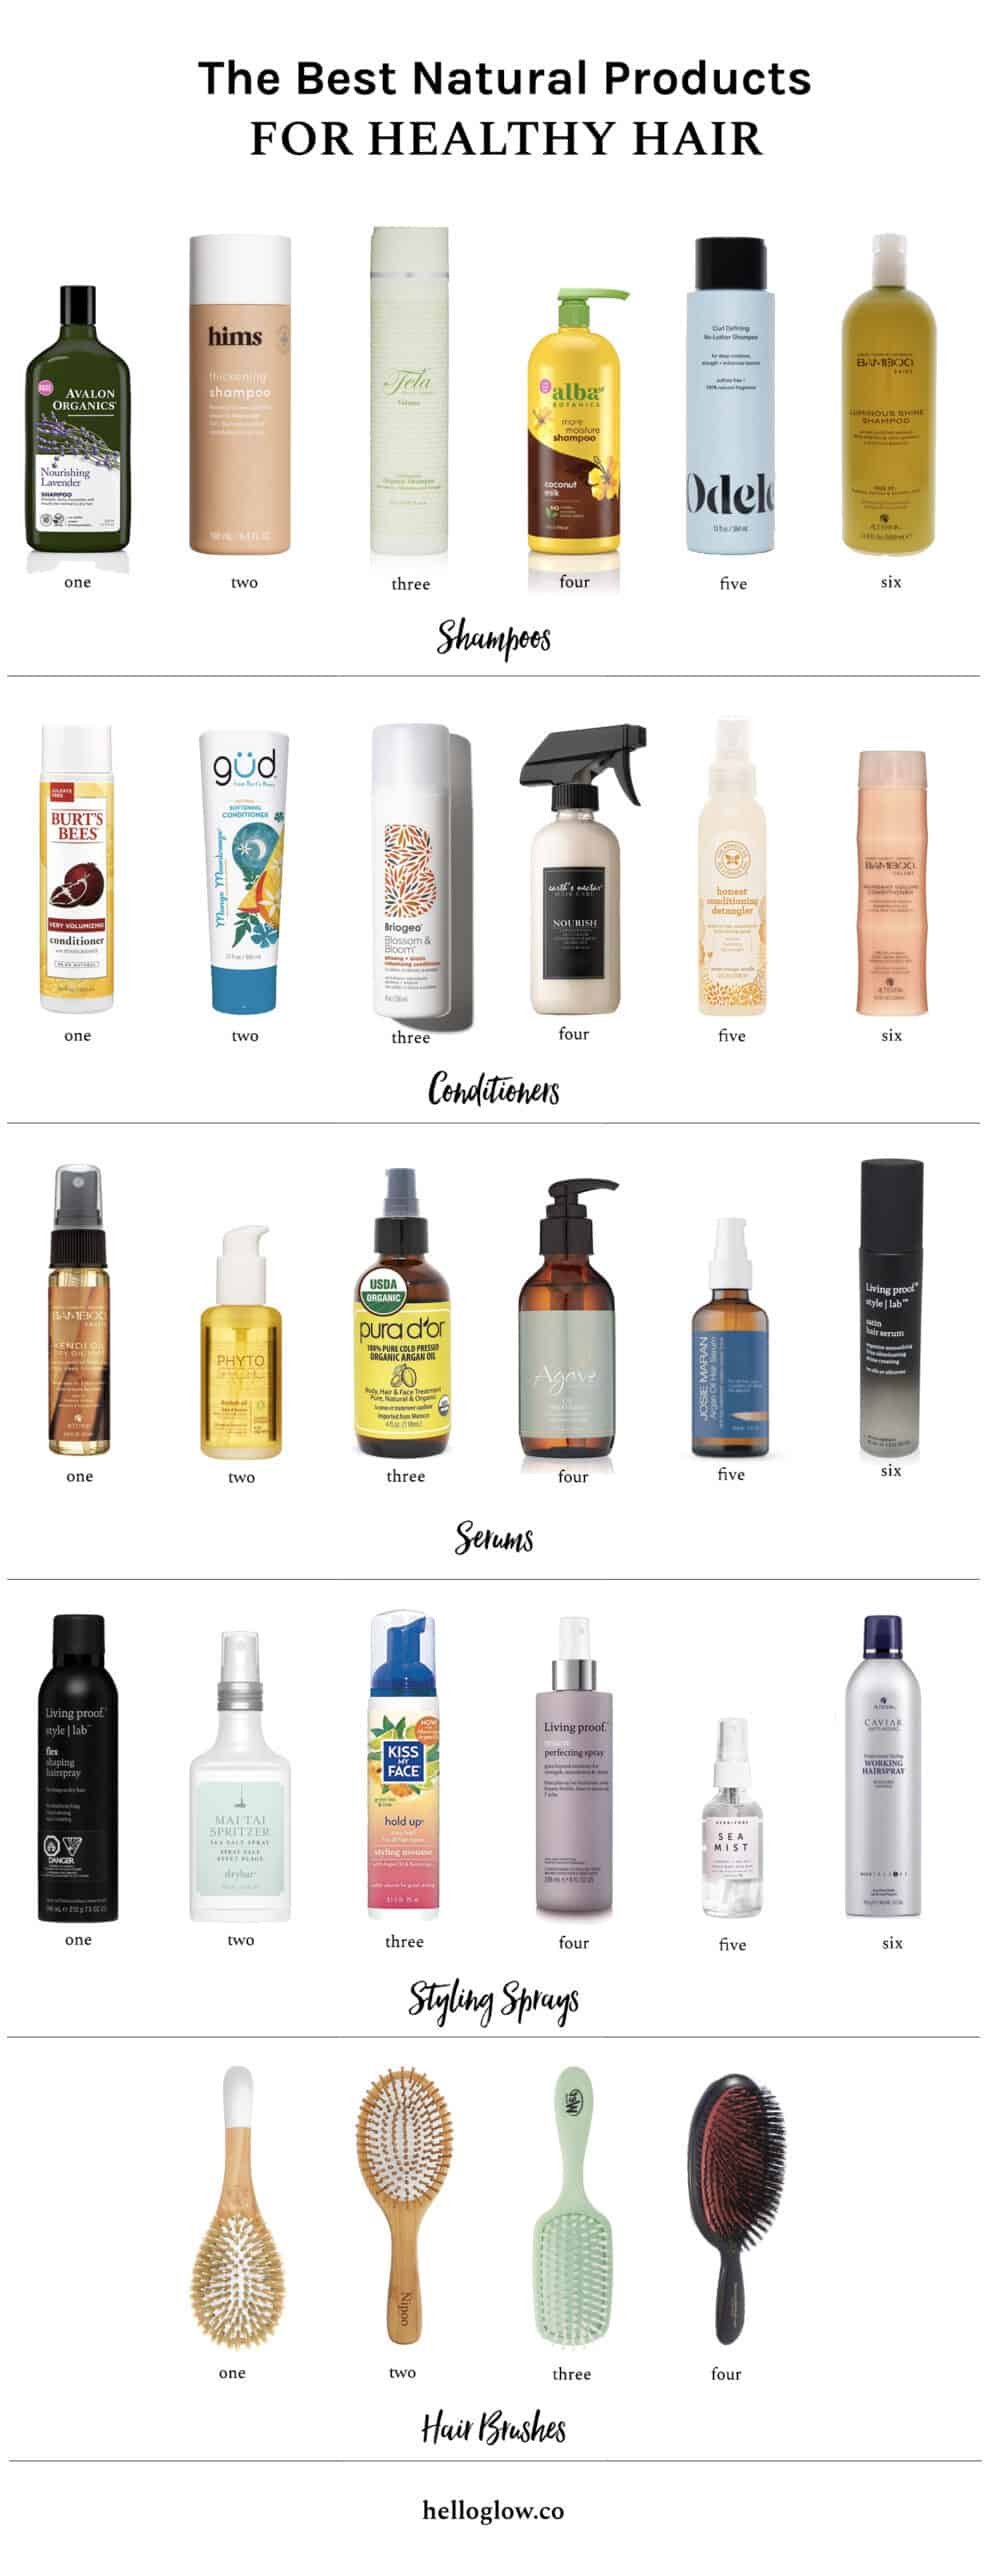 The Best Natural Products for Healthy Hair - HelloGlow.co